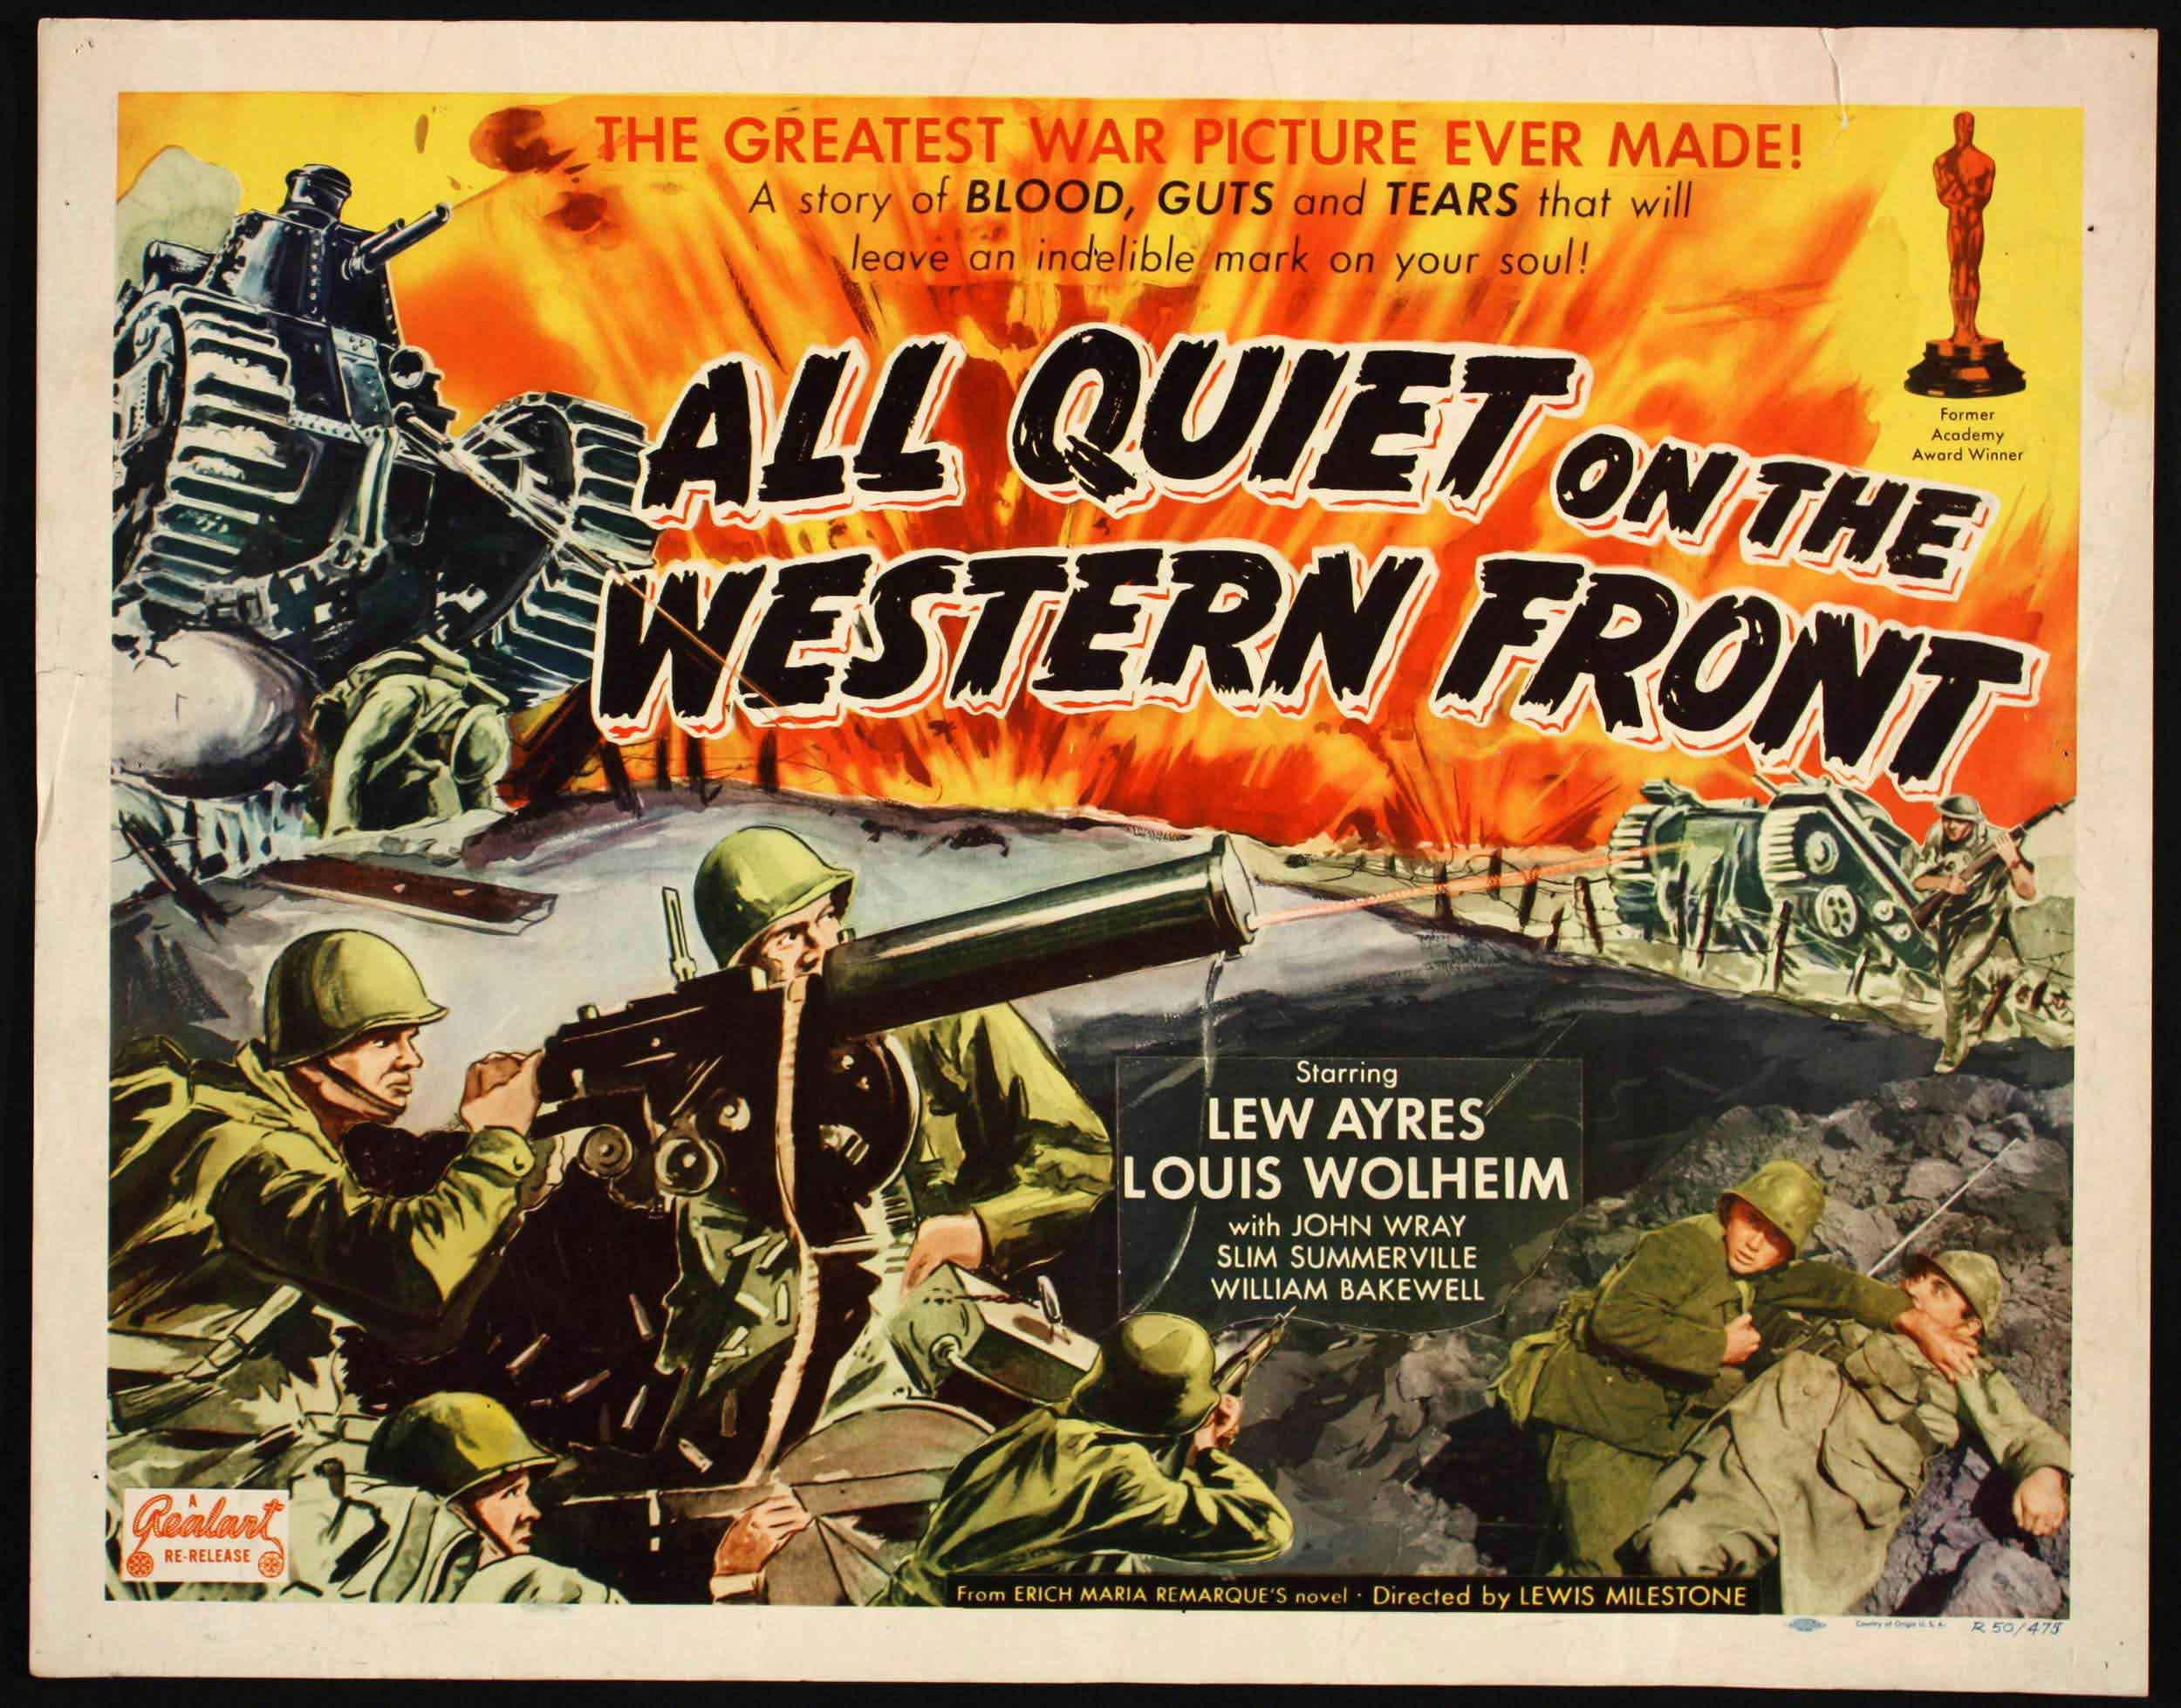 HOLLYWOODLANDAll Quiet on the Western Front (1930)Post navigationWelcome Film Fans!Browse Through Classic Film Posters: Recent ReviewsCategoriesRecent CommentsBlog StatsArchives